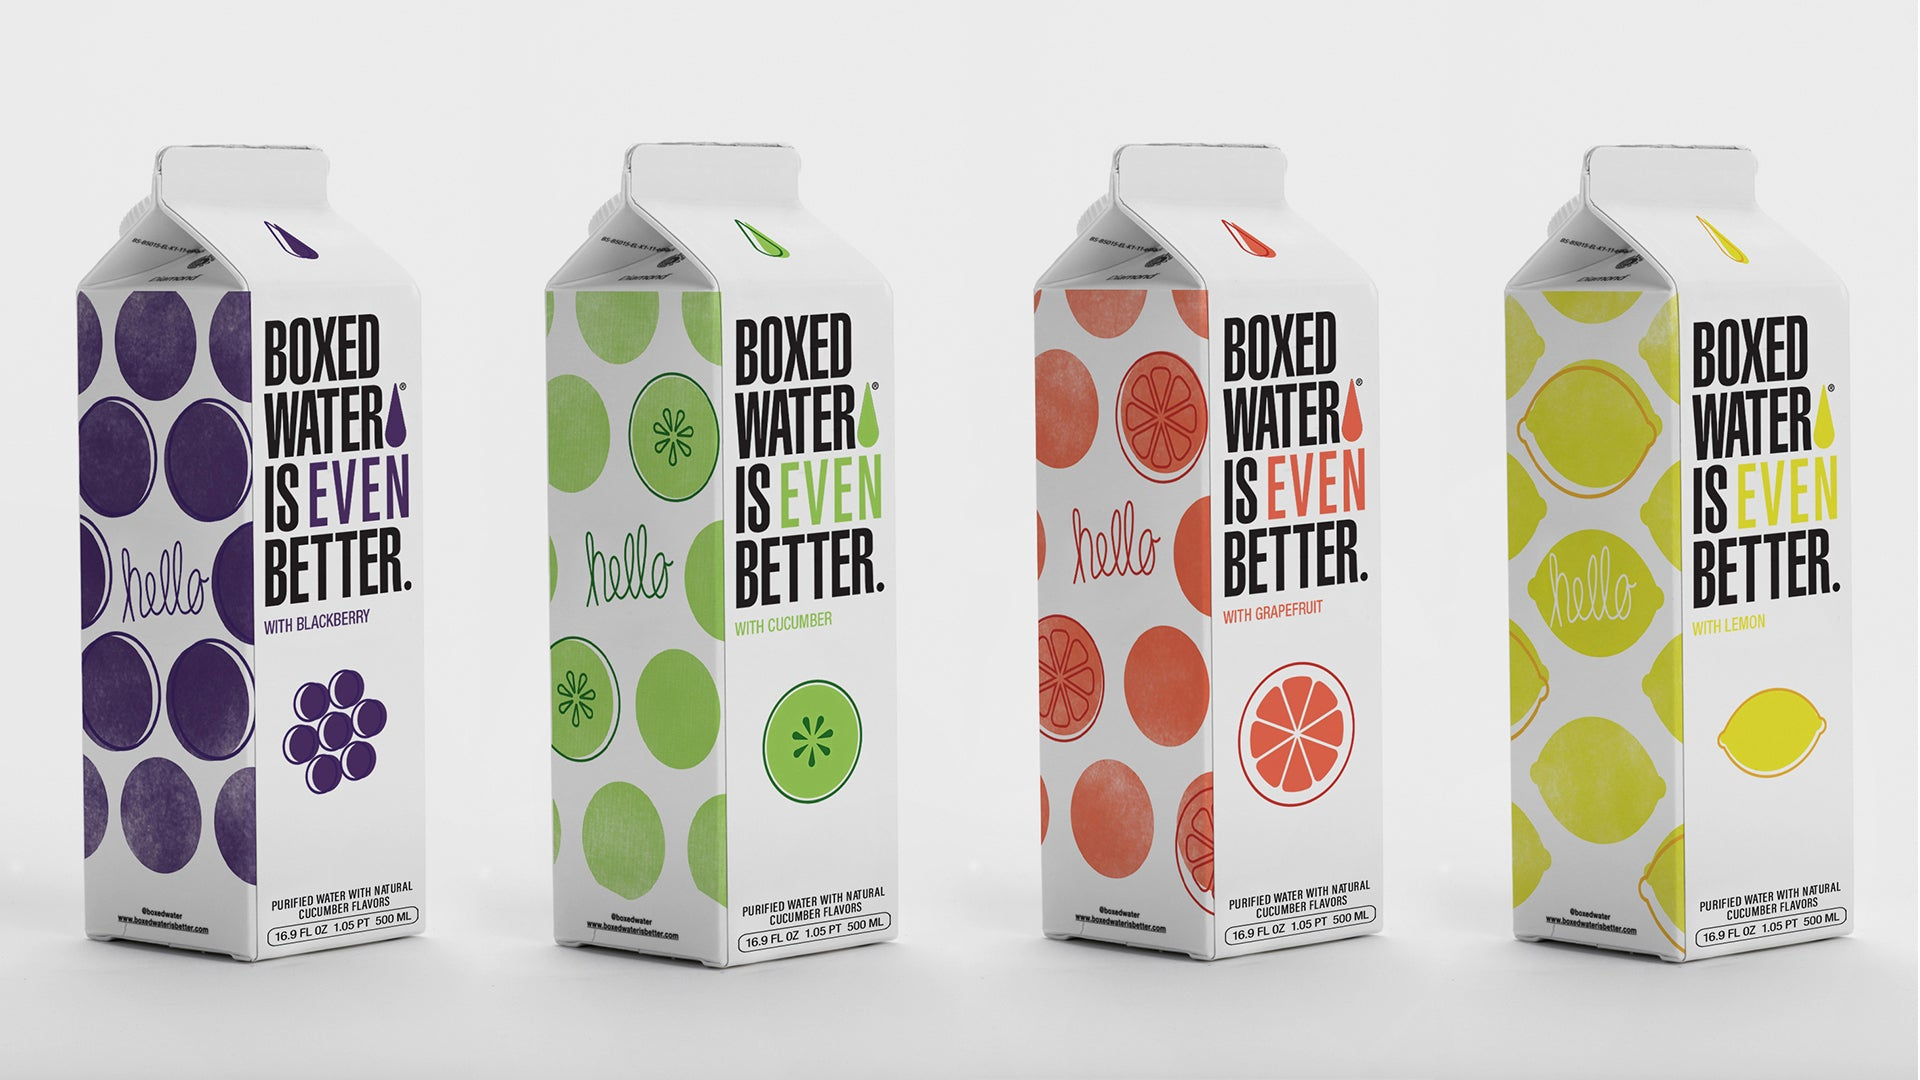 5 Things To Know about Boxed Water's New Flavors